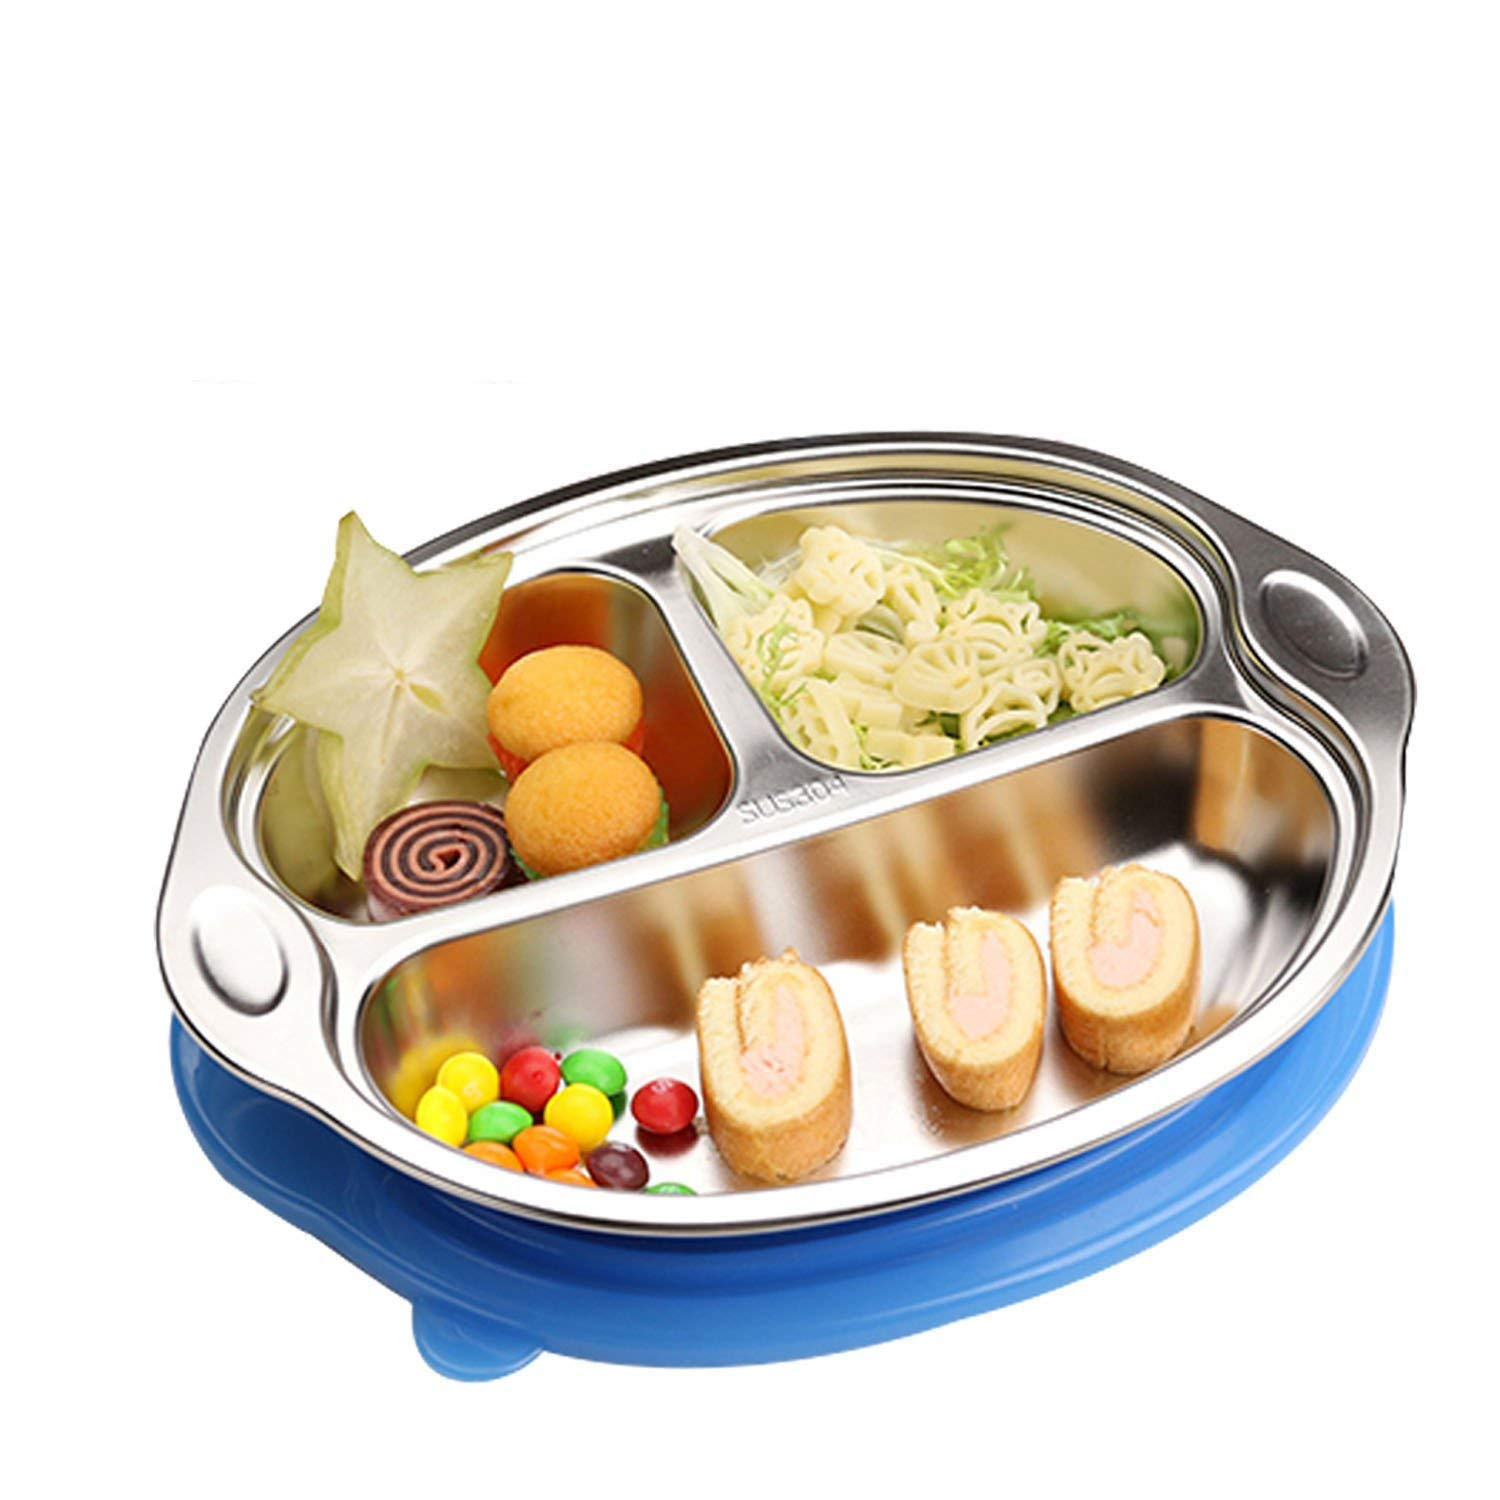 OldPAPA Smart Stainless Divided Platter with Sectional Lid, Stainless Steel Divided Plate for Babies, Toddlers and Kids, BPA Free Plate Blue